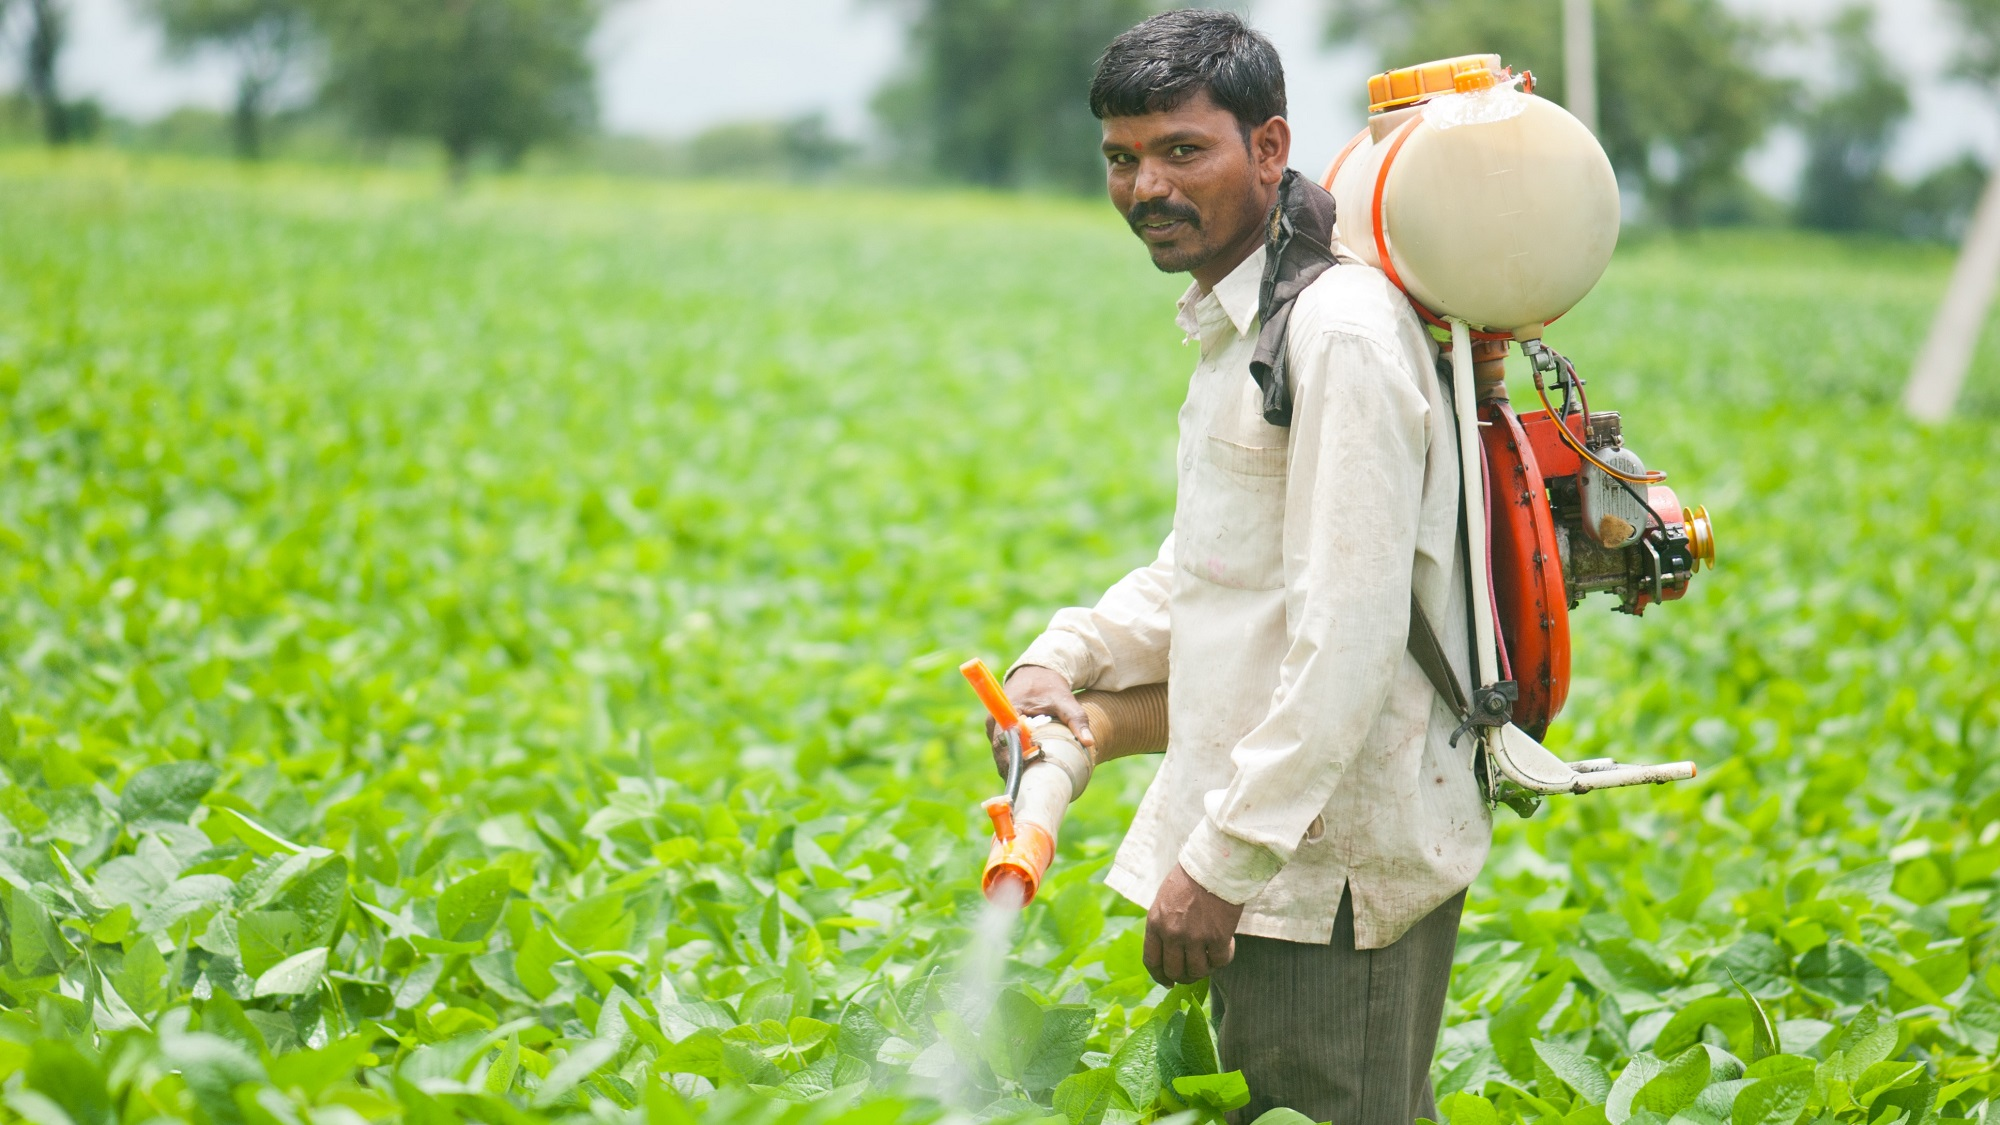 The sample of pesticides application on plants protocol